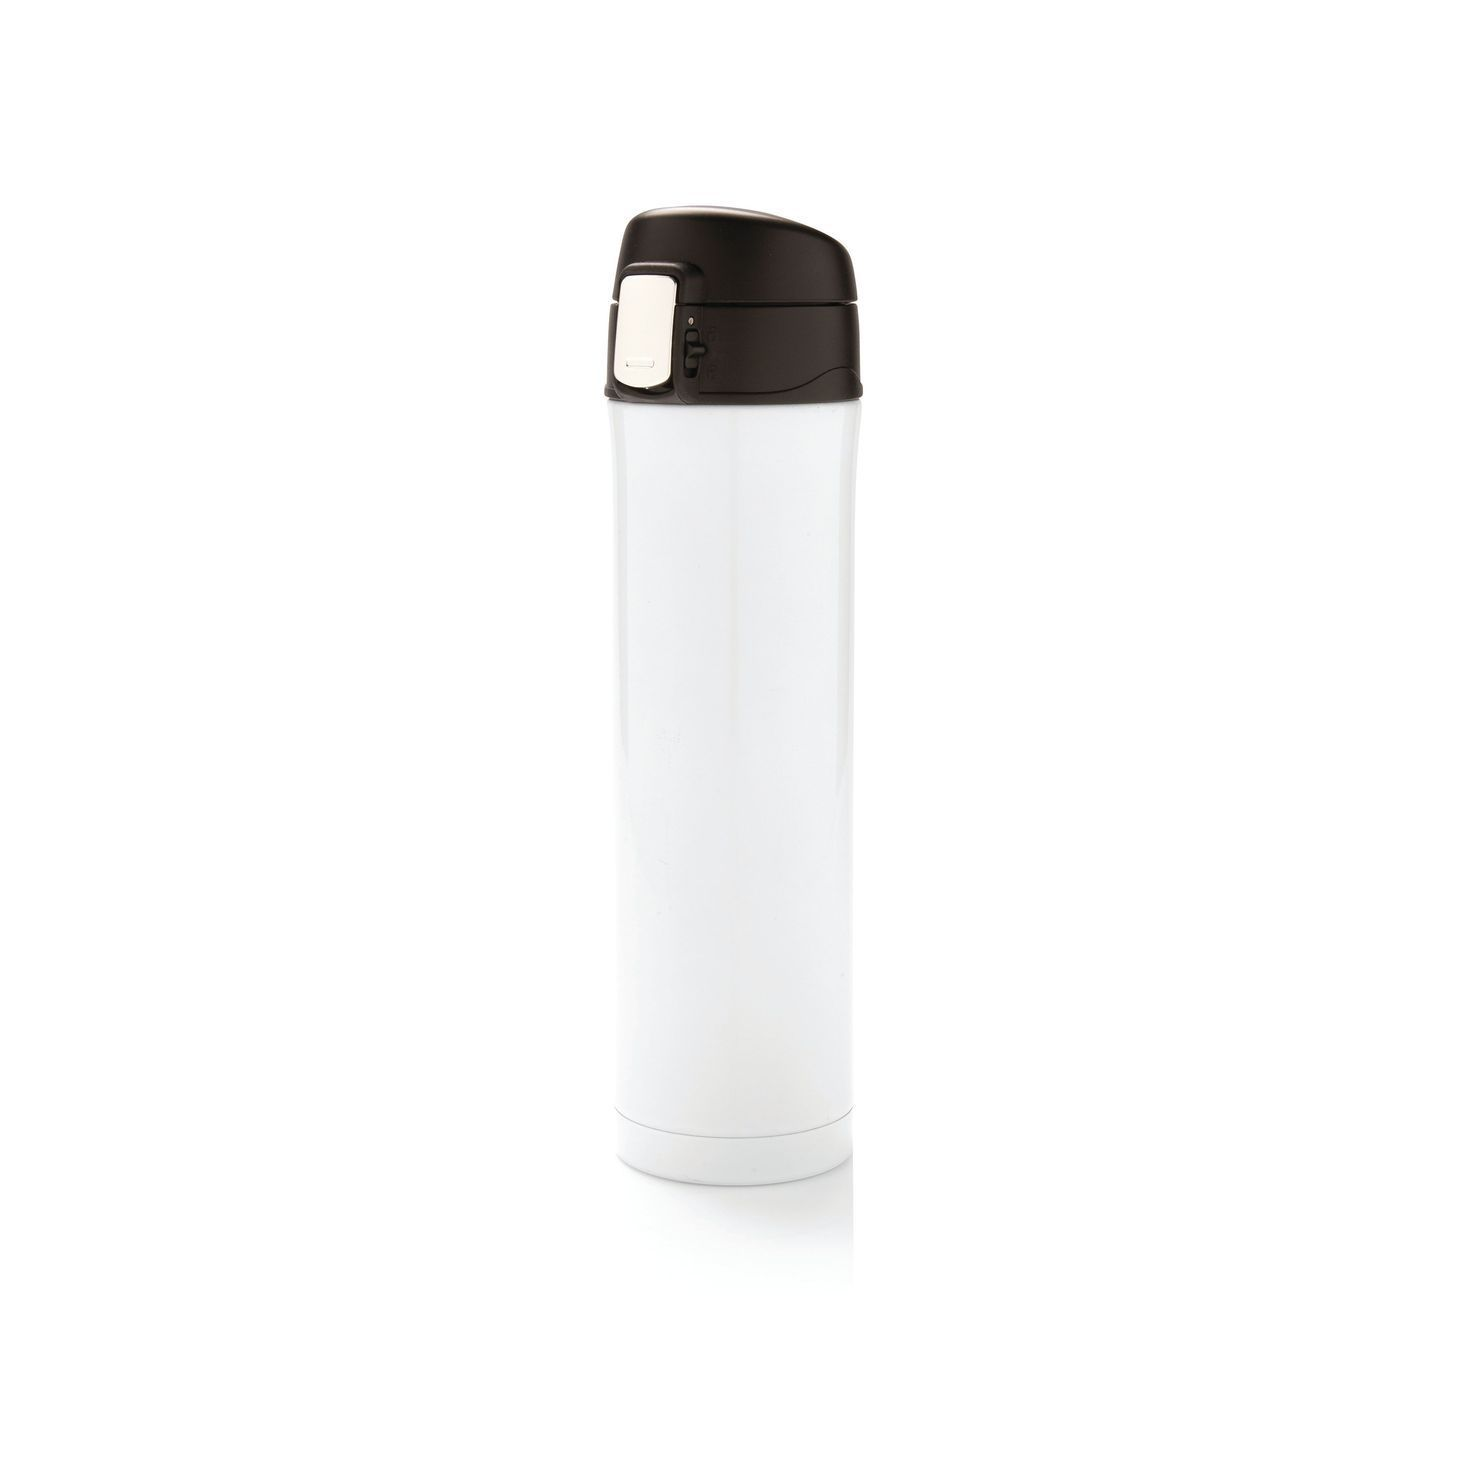 Witte Thermosfles | Lekvrij | 450 ml